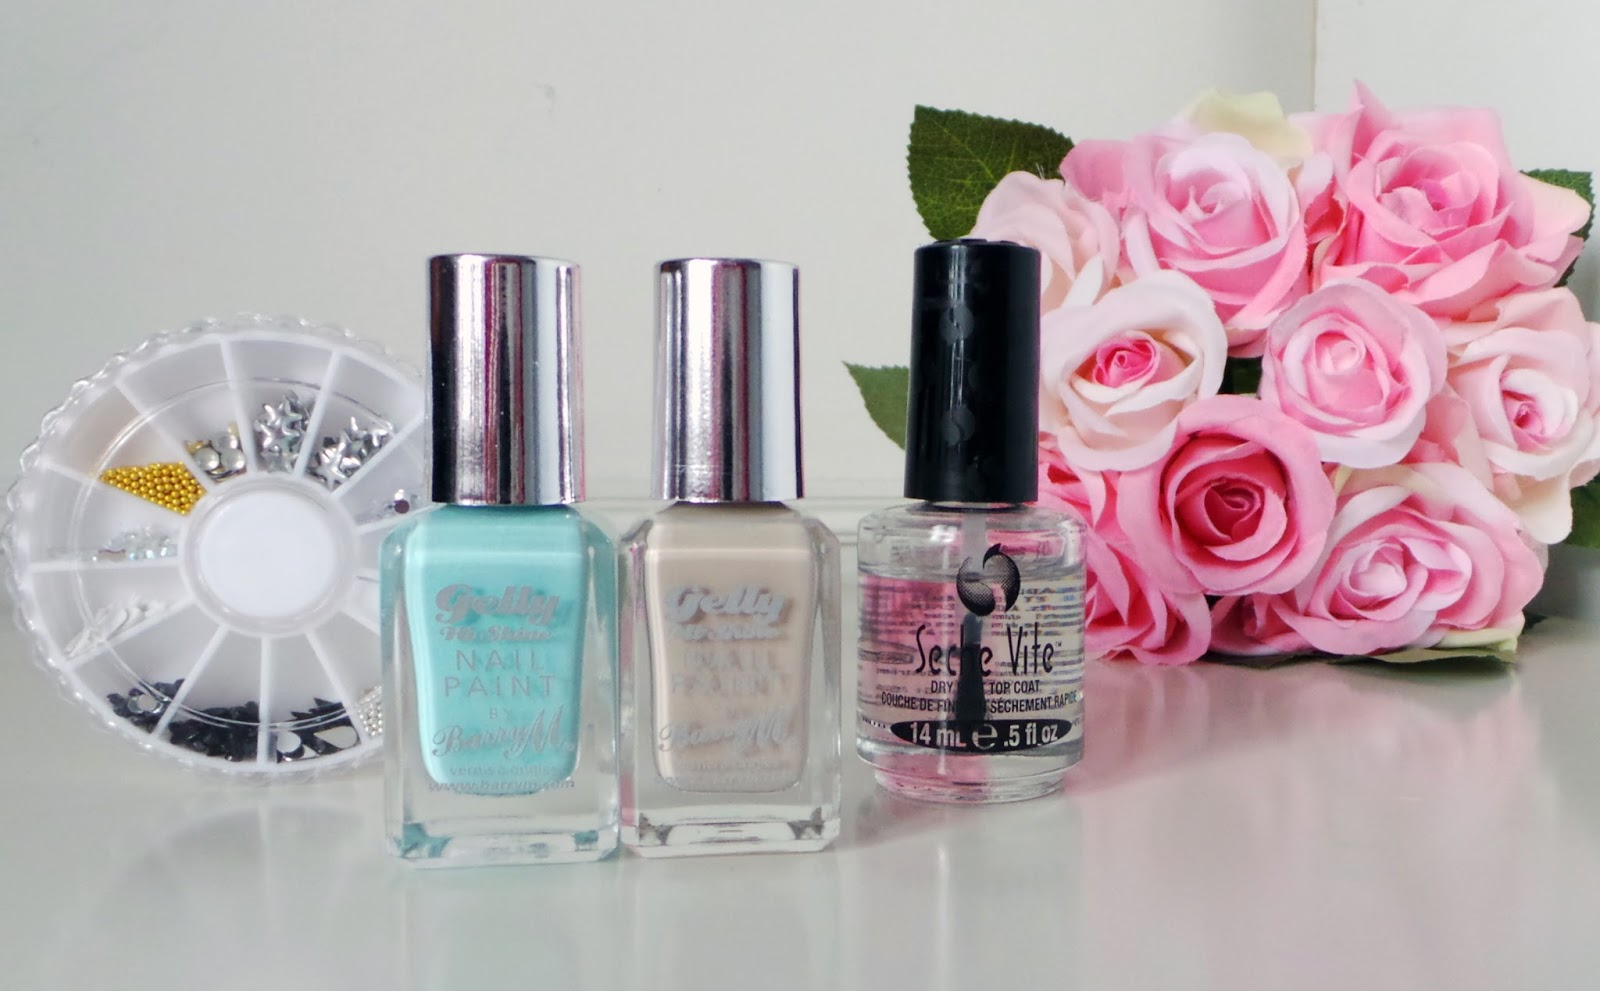 barry m gelly hi shine pastel collection, barry m gelly hi shine pastel review, barry m gelly hi shine pastel sugar apple, barry m gelly hi shine lychee, barry m gelly hi shine pastel nail art, nail art, nail designs, nude nails, pretty pastel nails, NOTD, nail blog, nail bloggers, nailbloggers, nail art blog,  primark nails, primark nail art, primark nail wheel, cheap nail products, gold studs, gold stud nails,